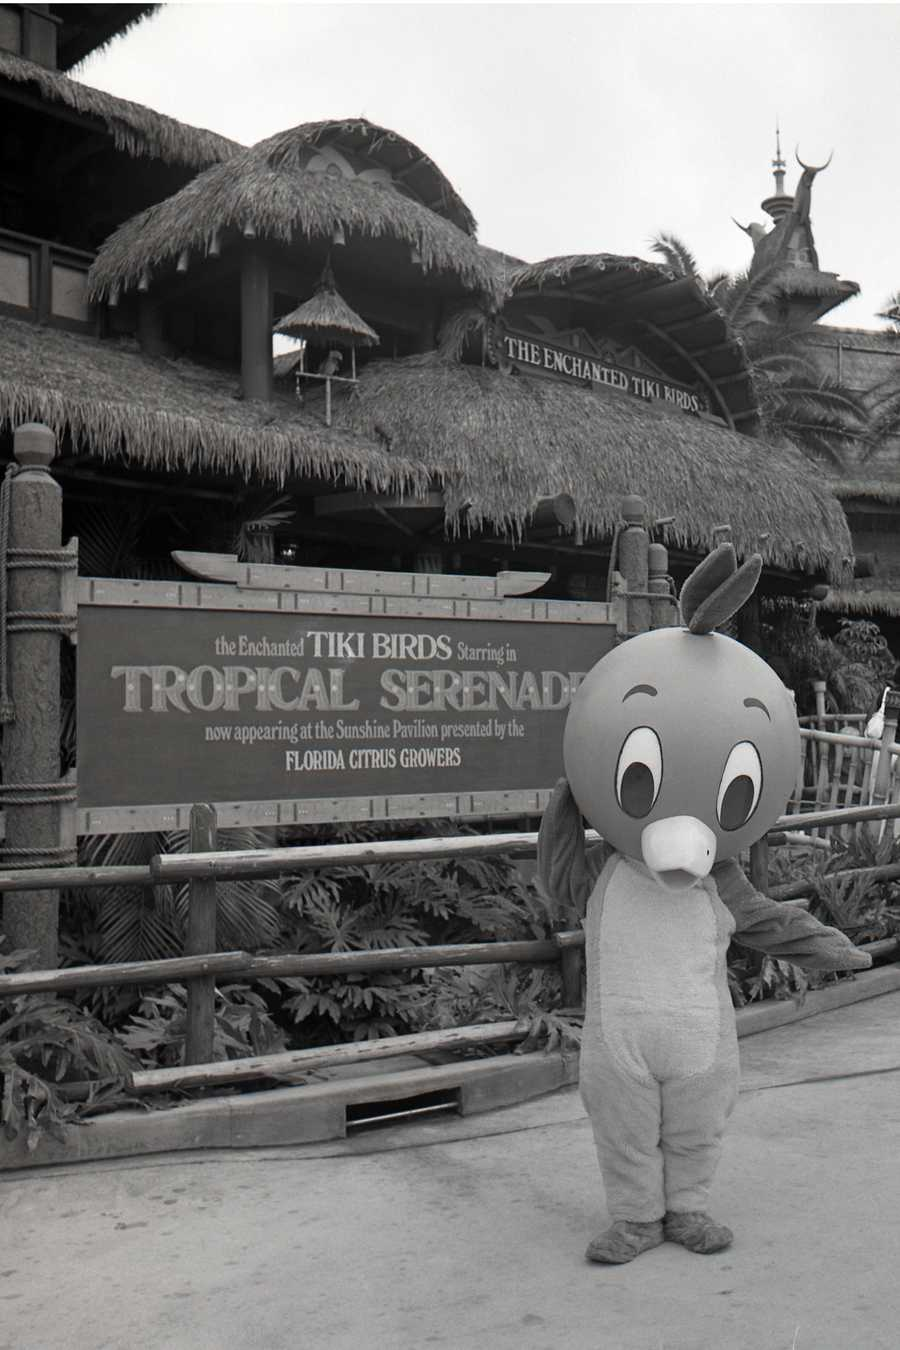 The Enchanted Tiki Birds in the 1970s.